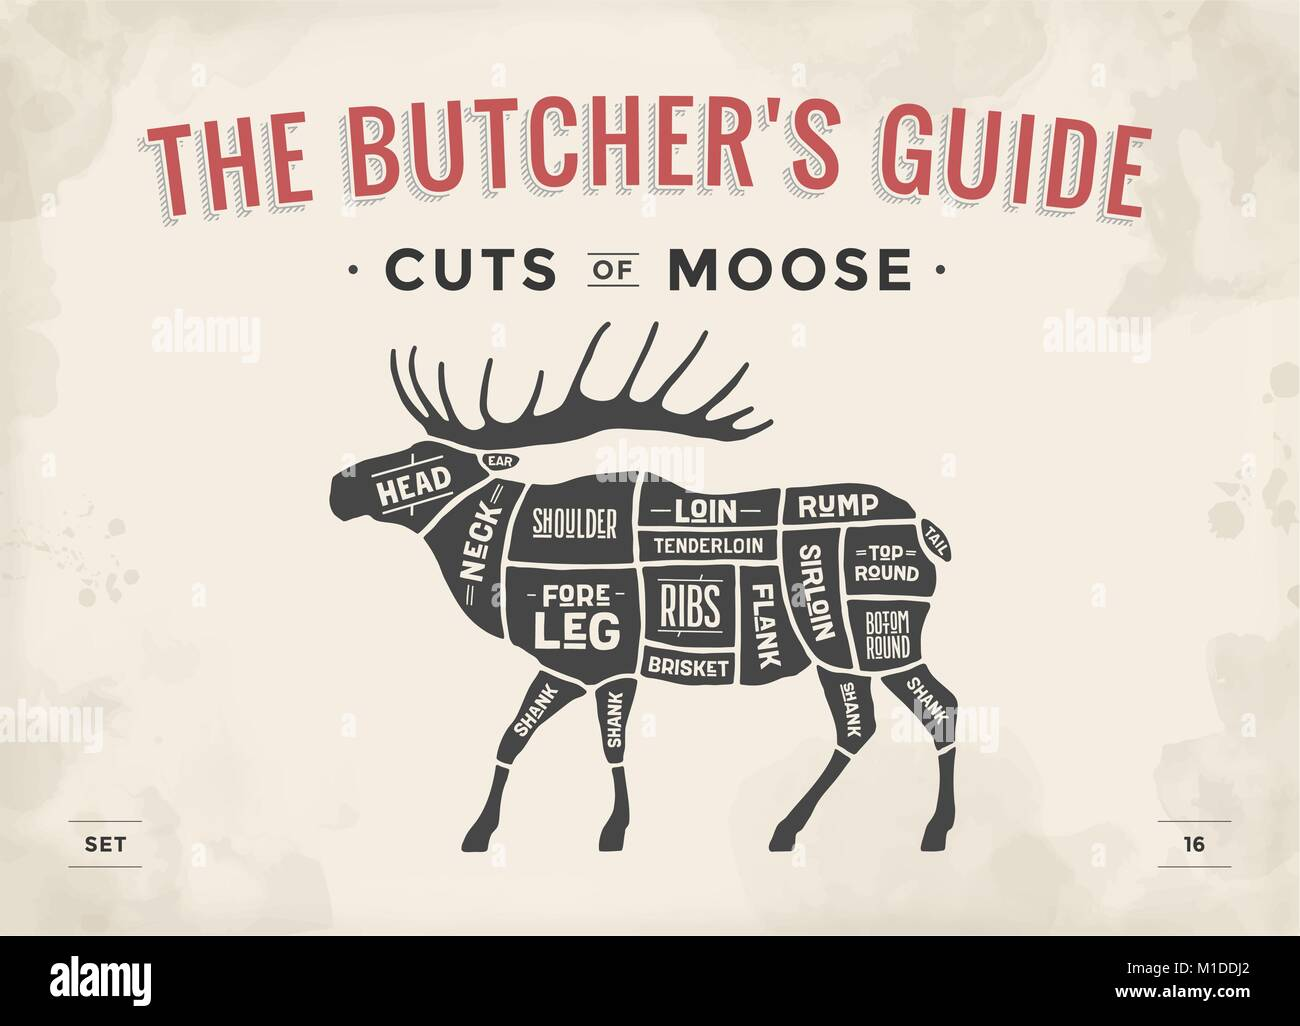 cuts of meat diagram stock photos & cuts of meat diagram ... diagram of parts of toilet diagram of moose cuts #5